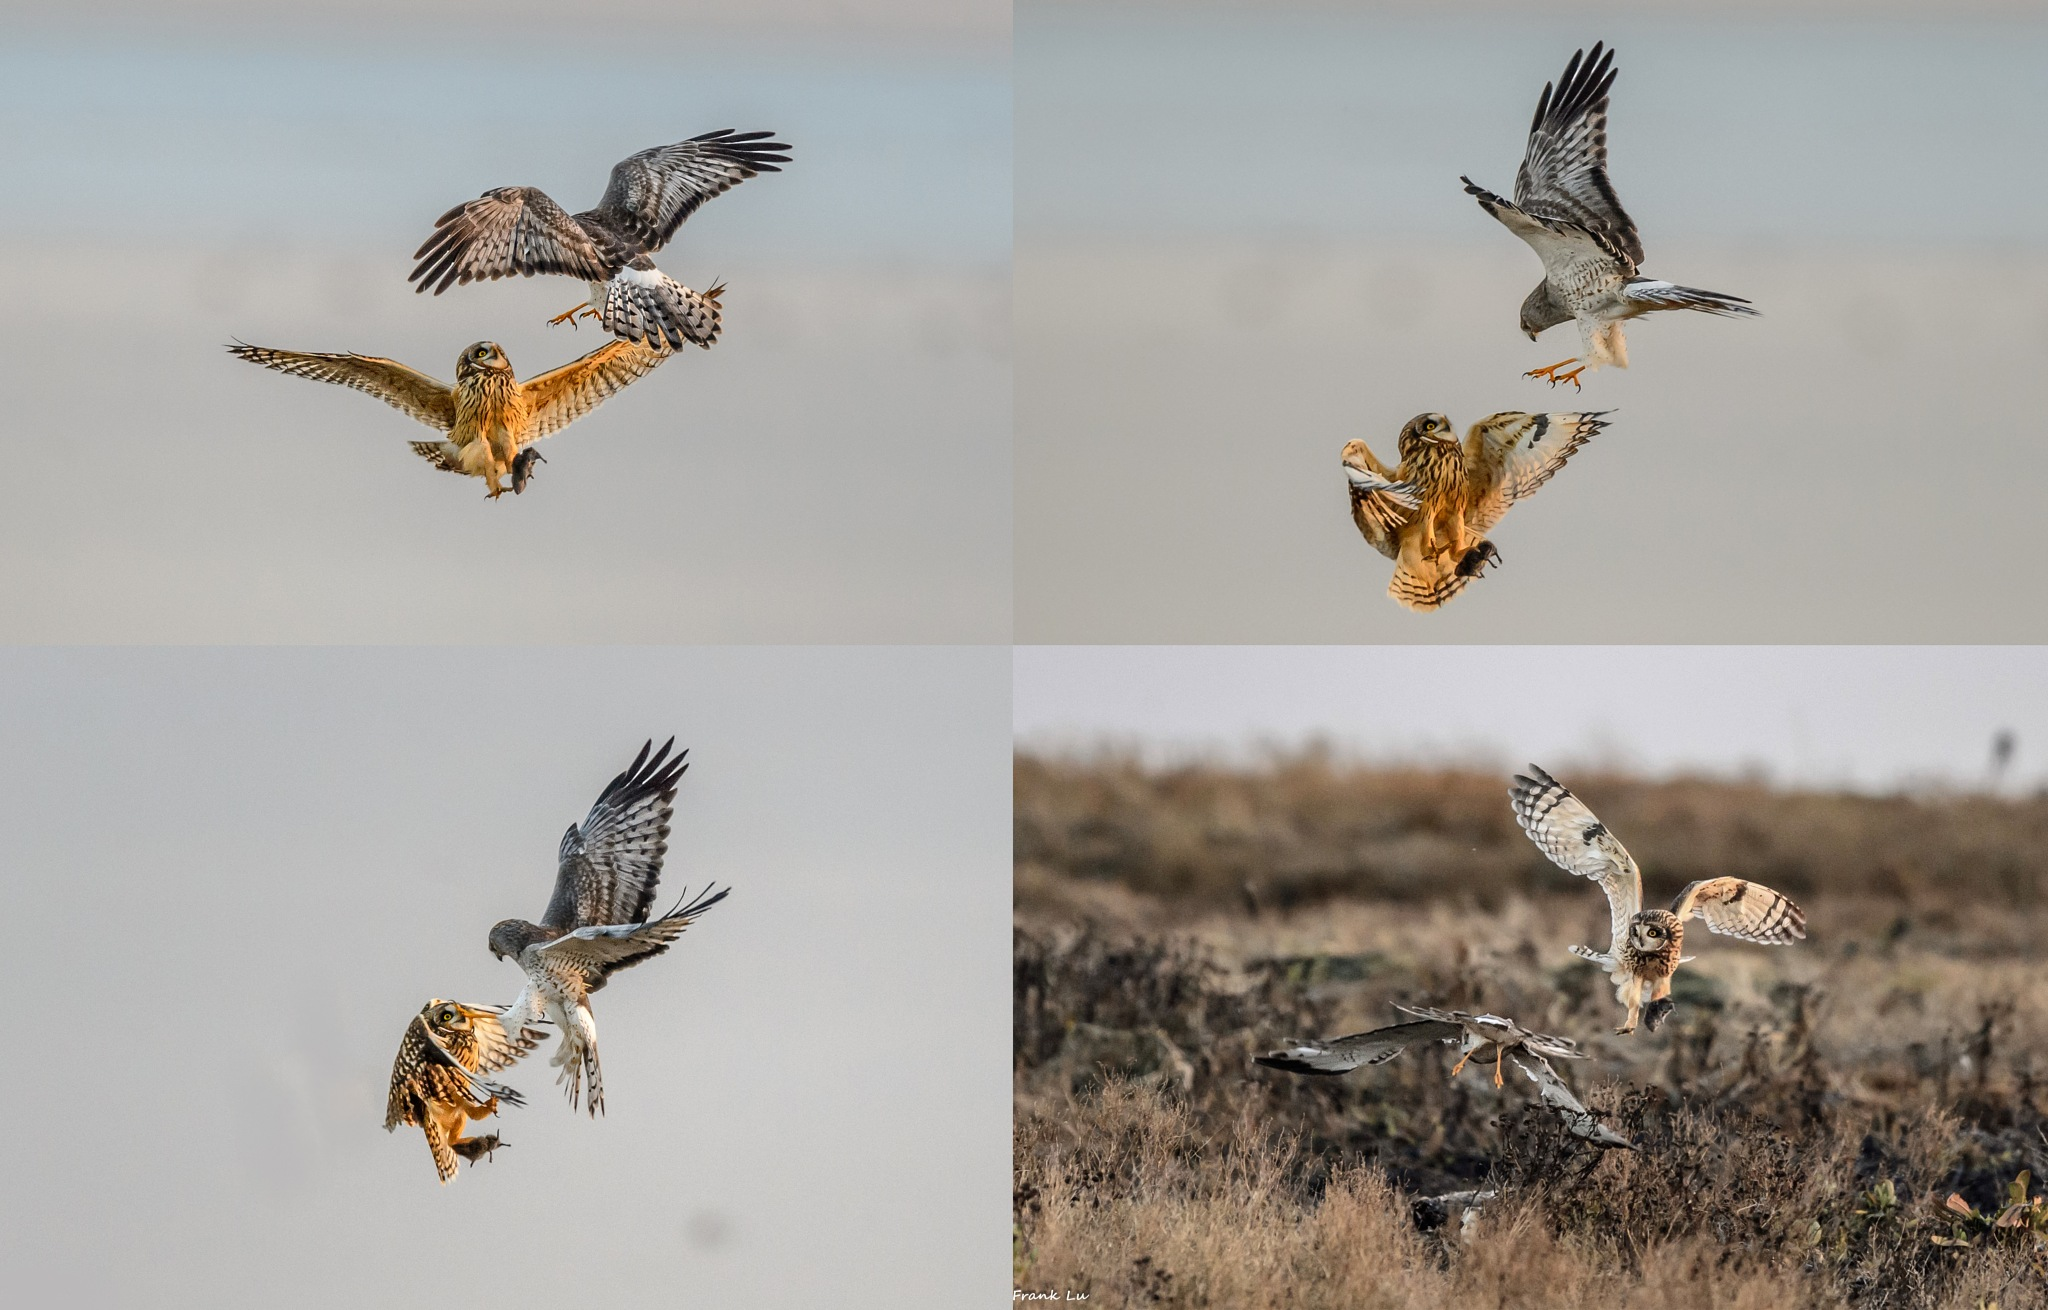 Short-eared Owl and Northern Harrier dispute by Janmilu